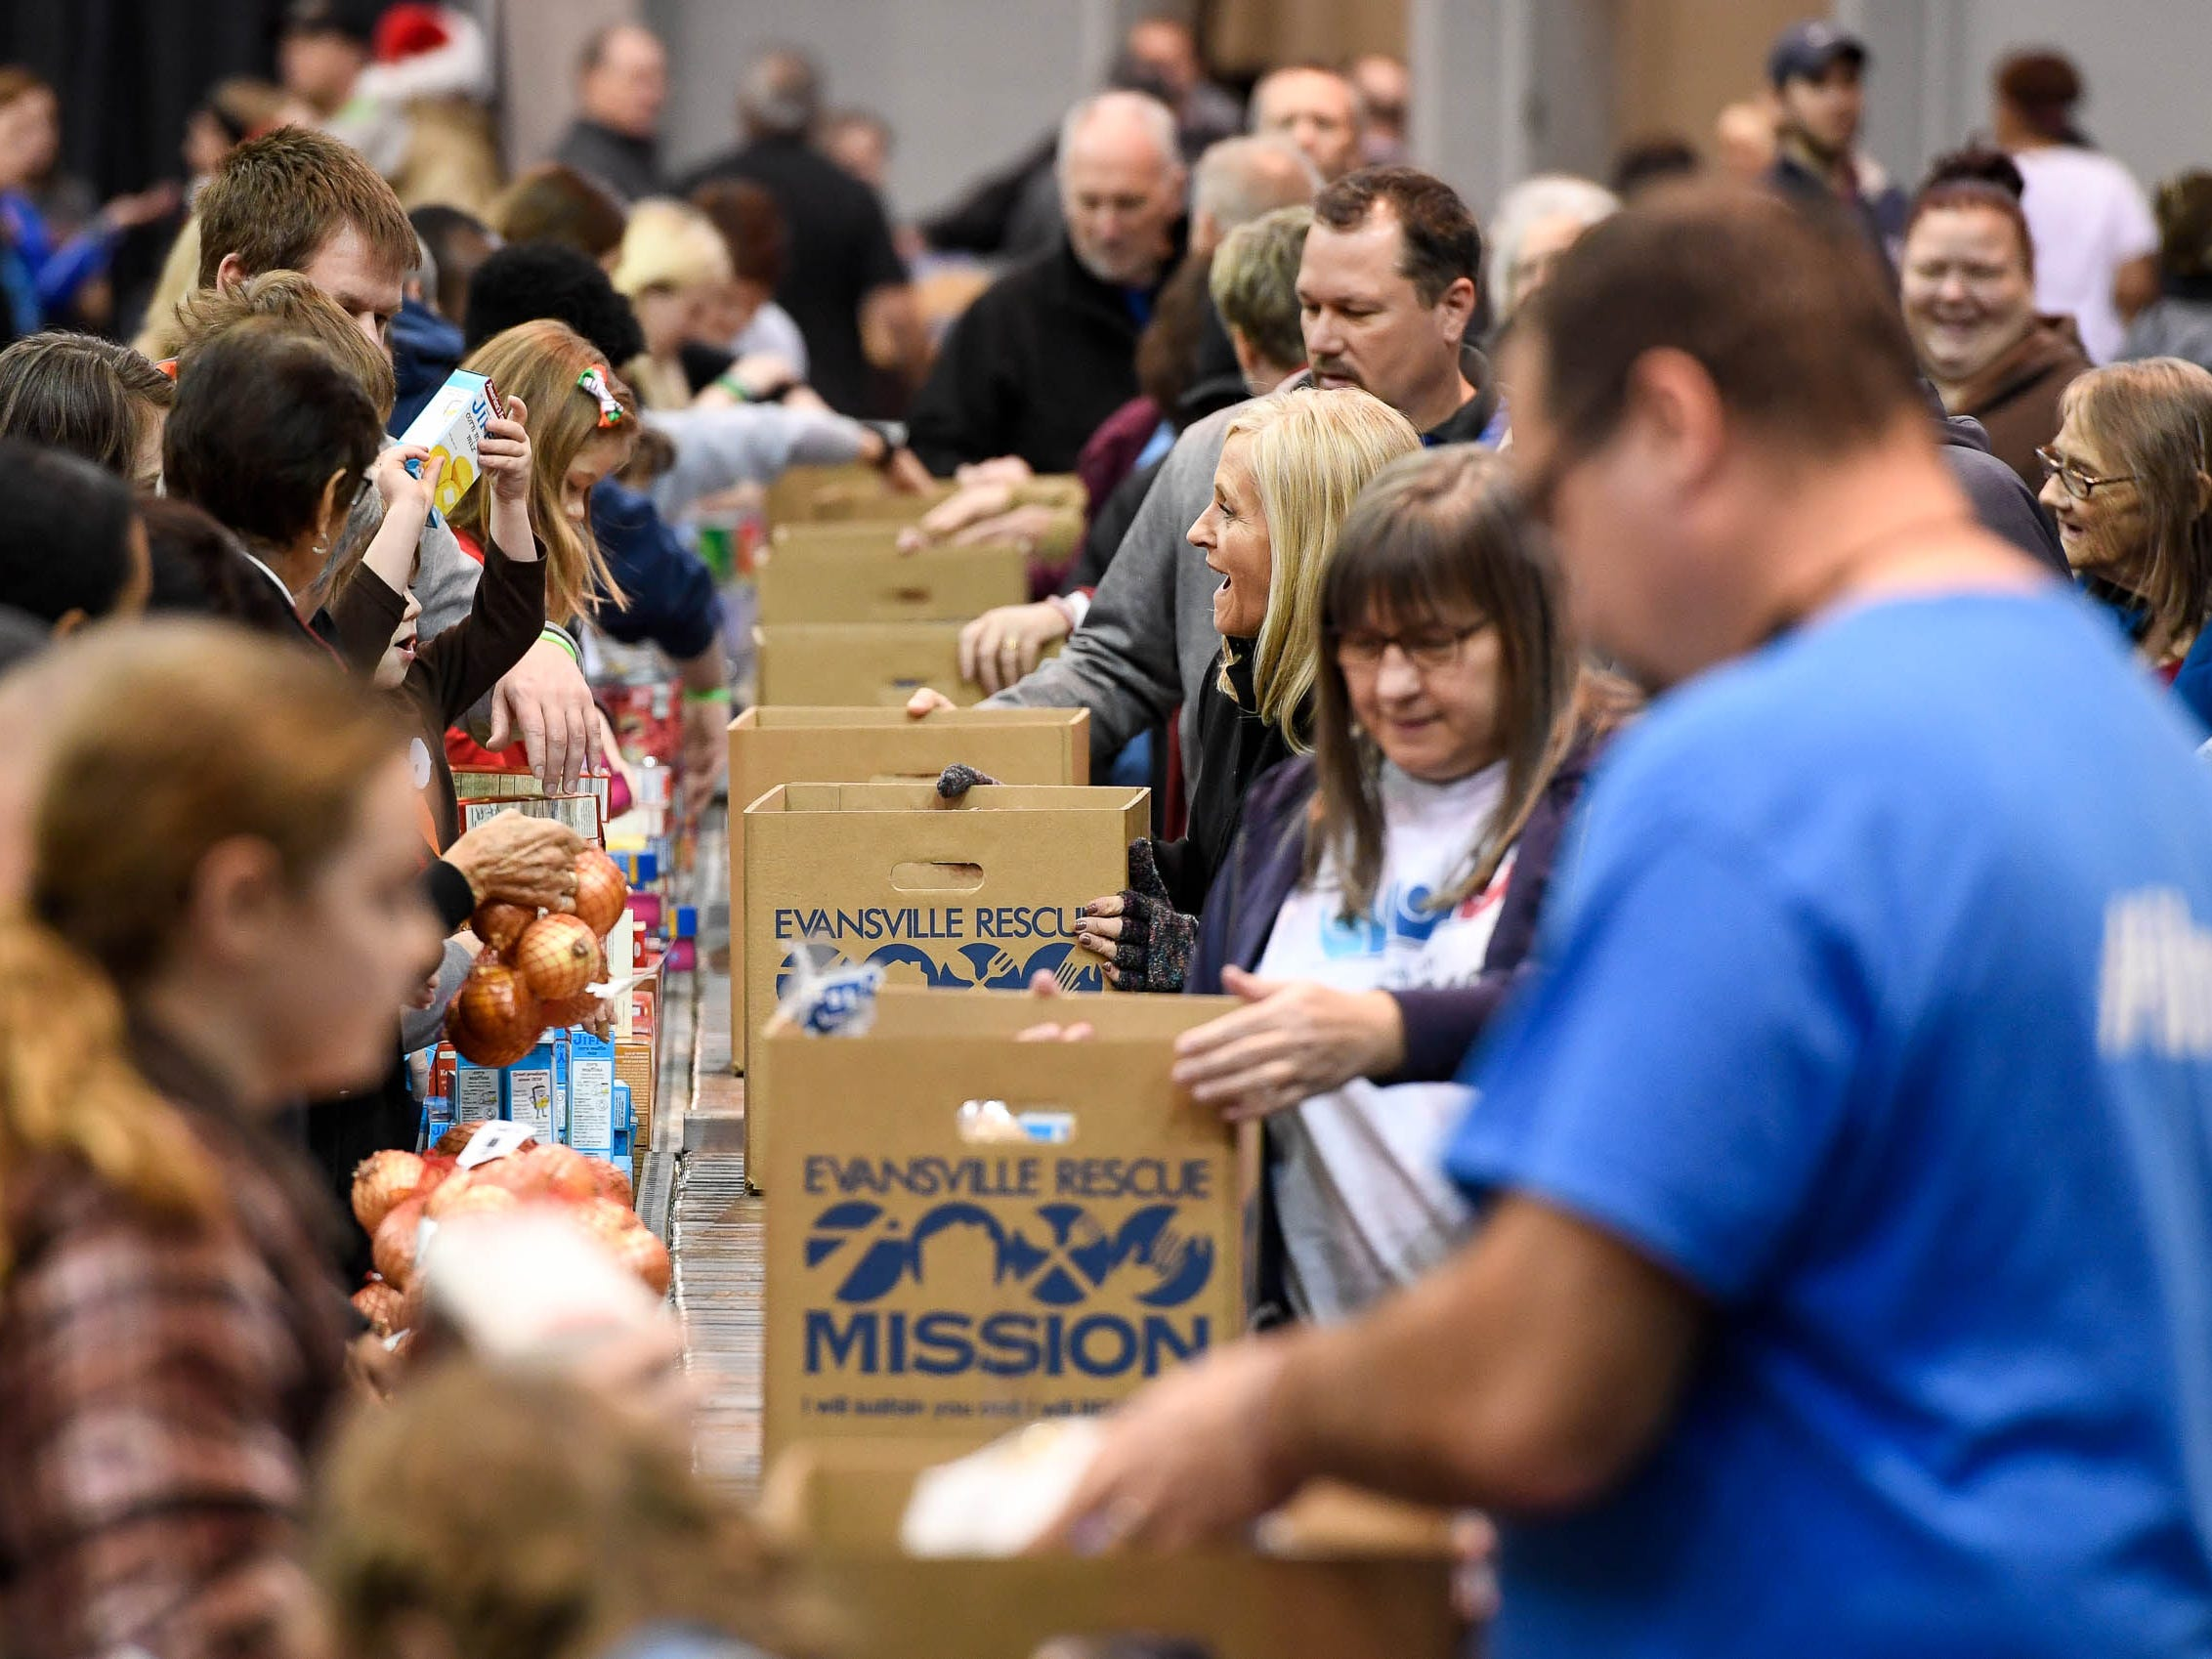 Volunteer helpers assist families in need fill food boxes at the Evansville Rescue Mission's 96th annual Gobbler Gathering held at the Old National Events Plaza Tuesday, November 20, 2018.